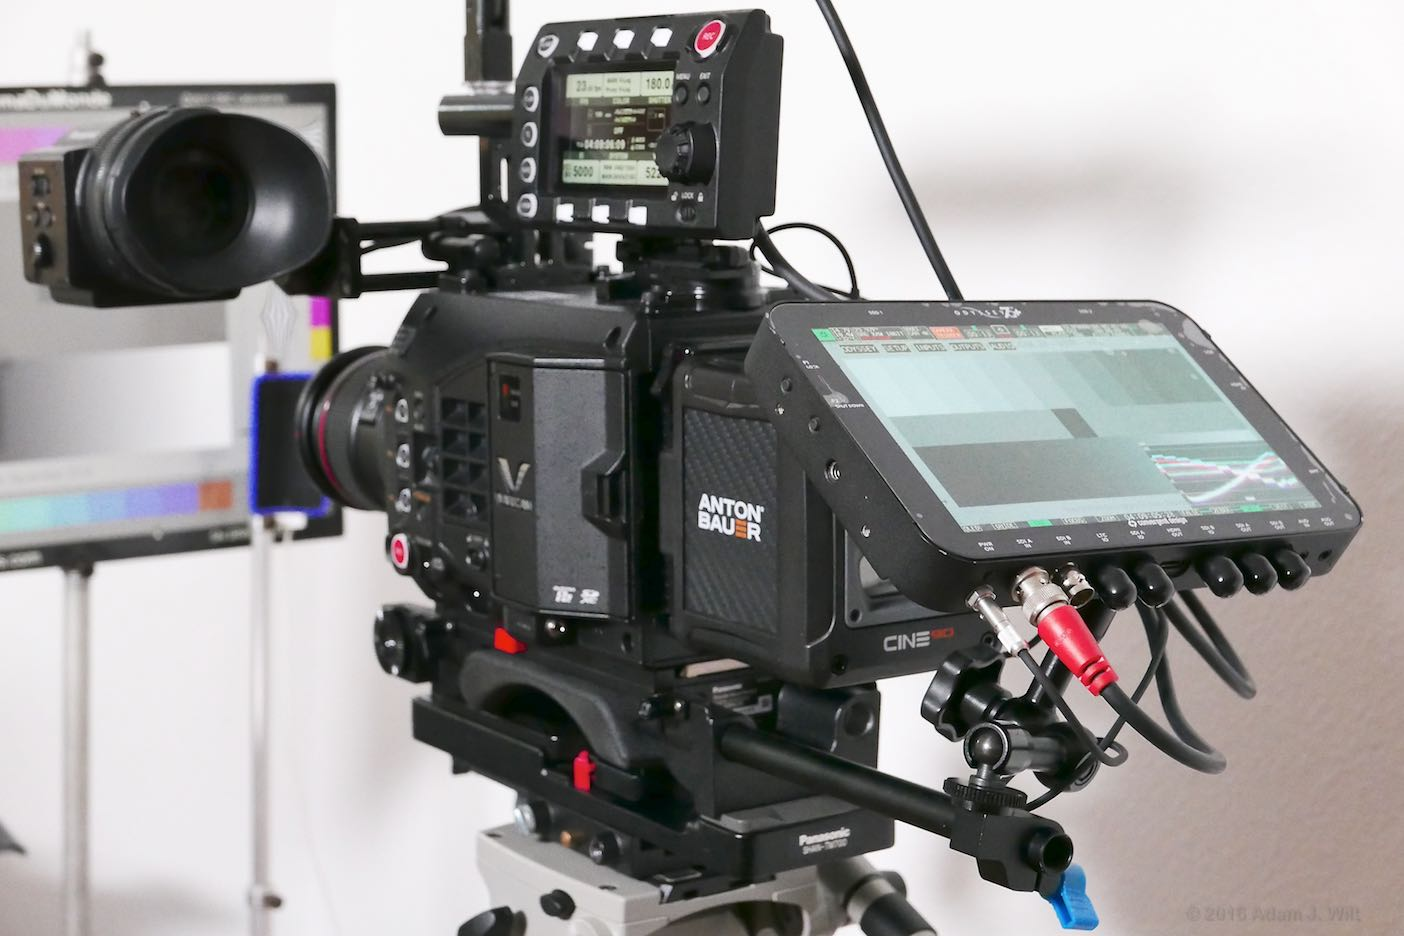 VariCam LT with 7Q+ recorder